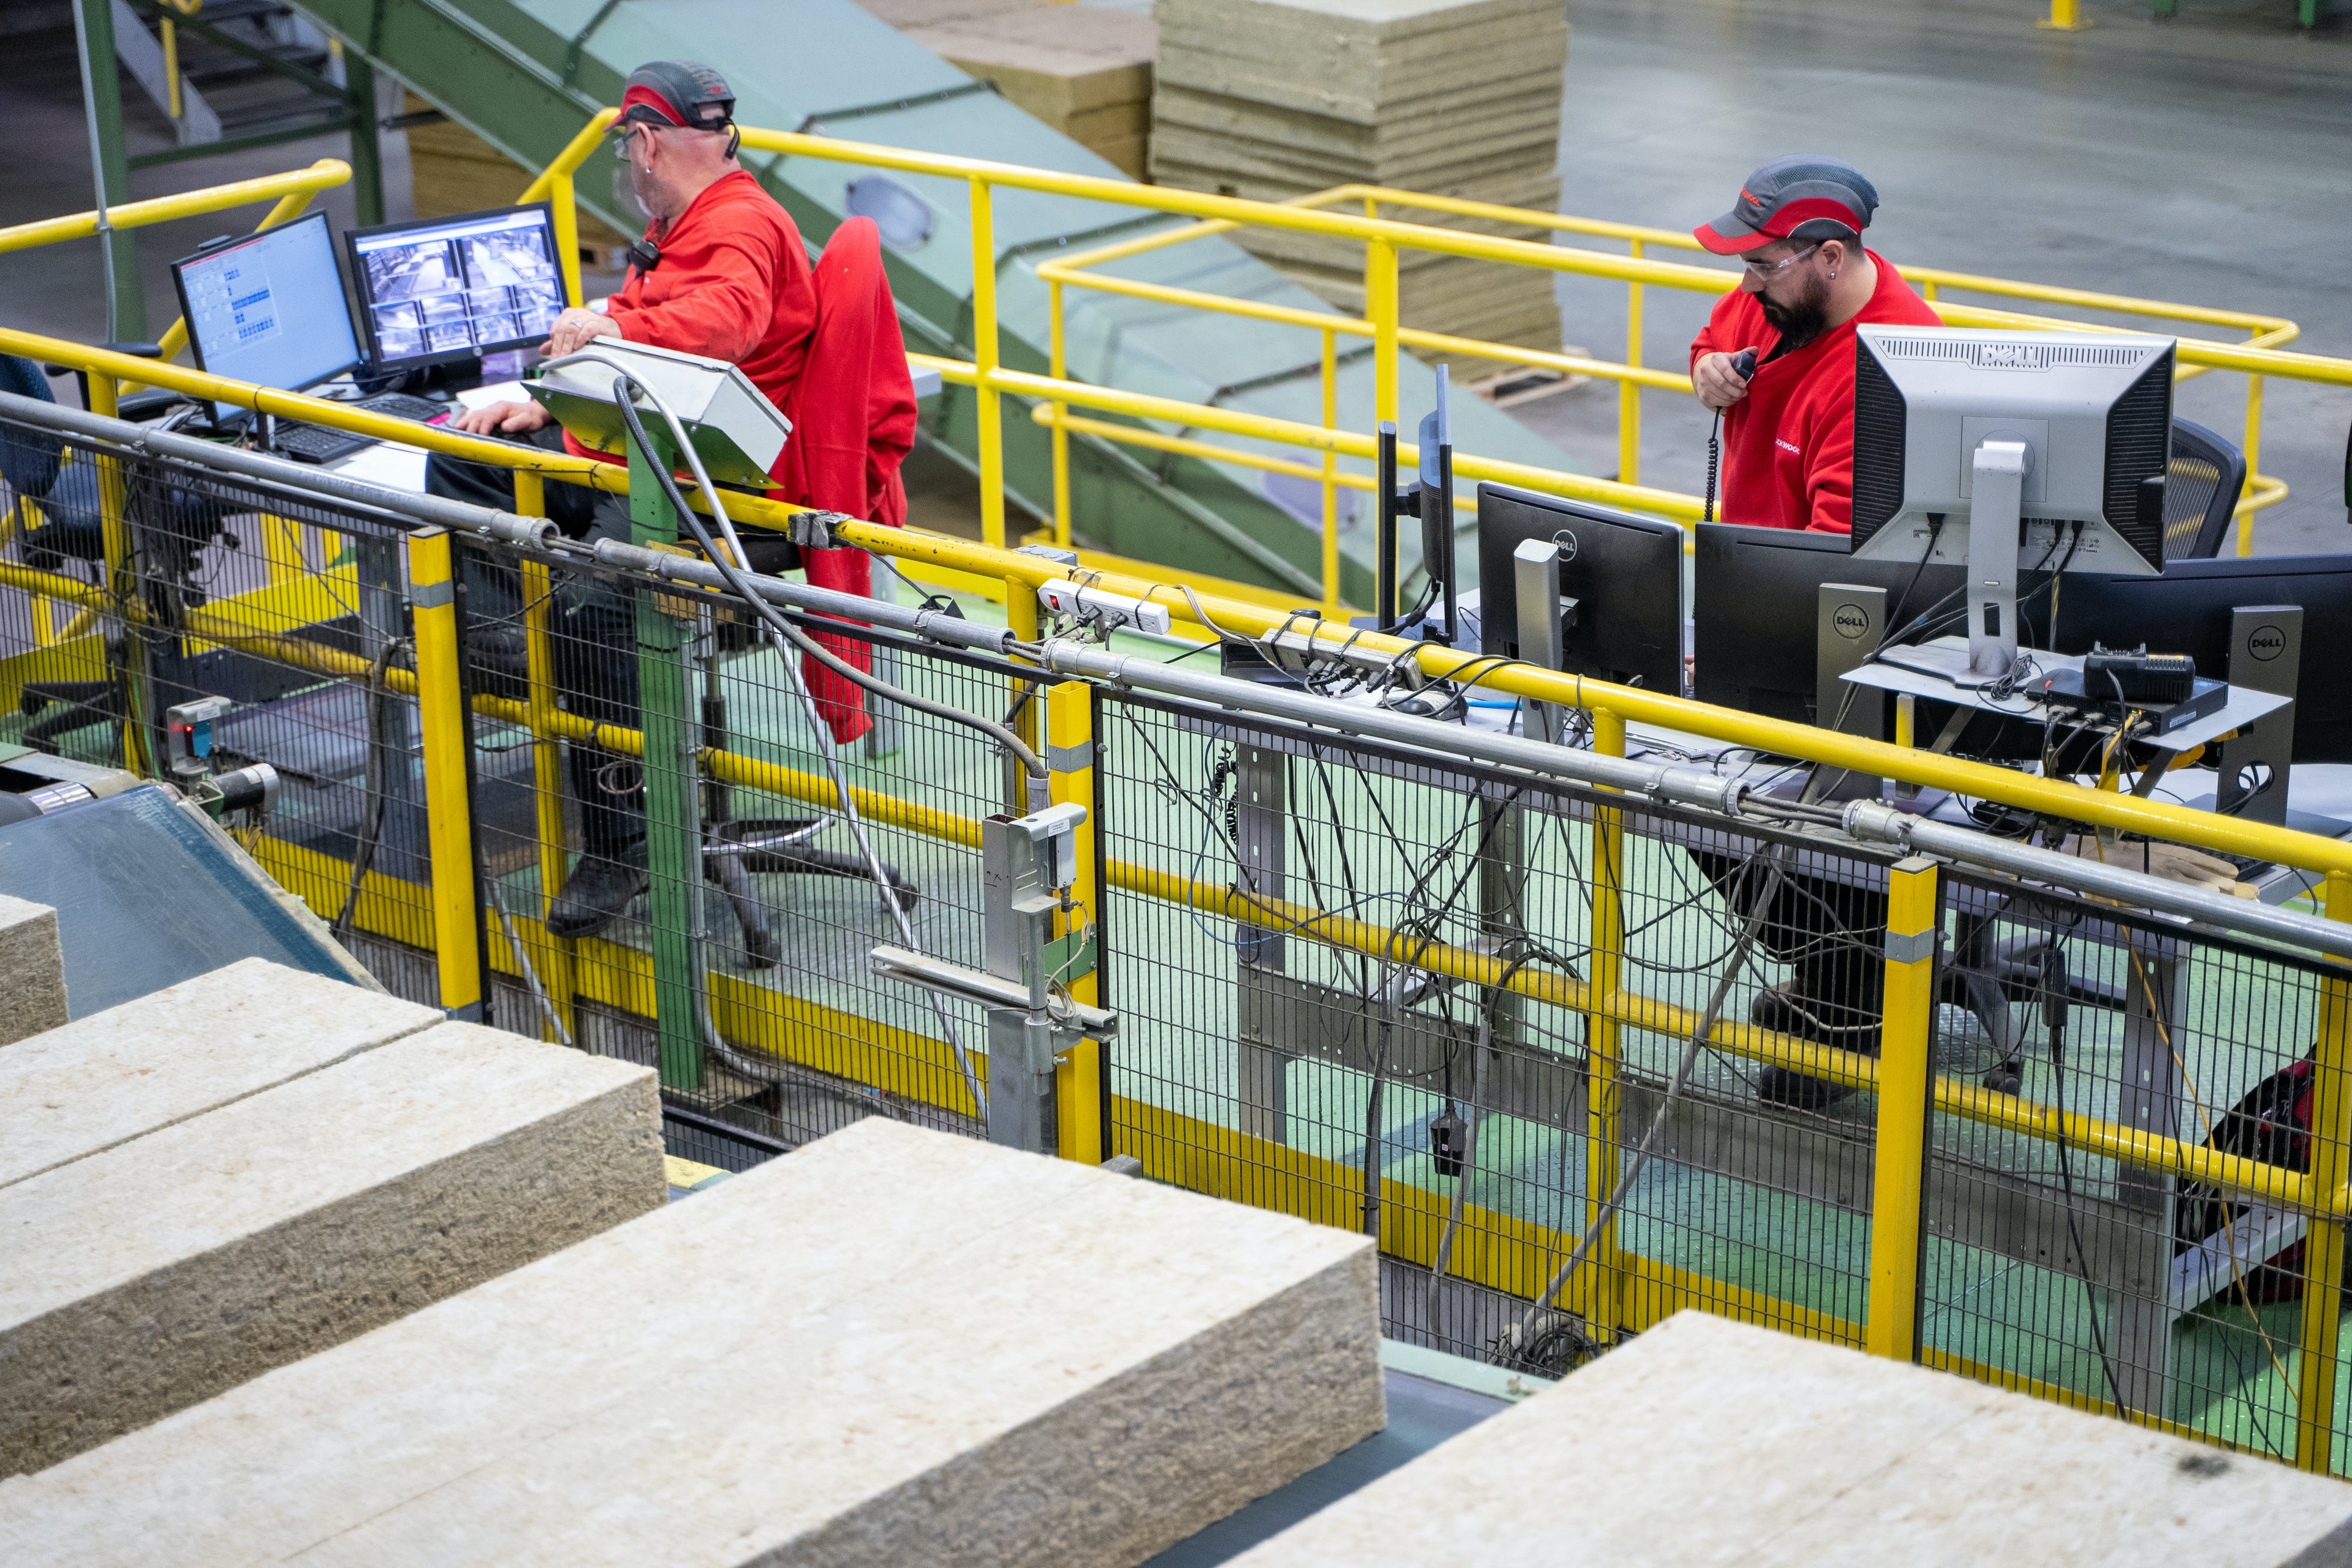 People working together, doing their jobs, teamwork, plant operations at the production manufacturing factory facility in Milton, ON